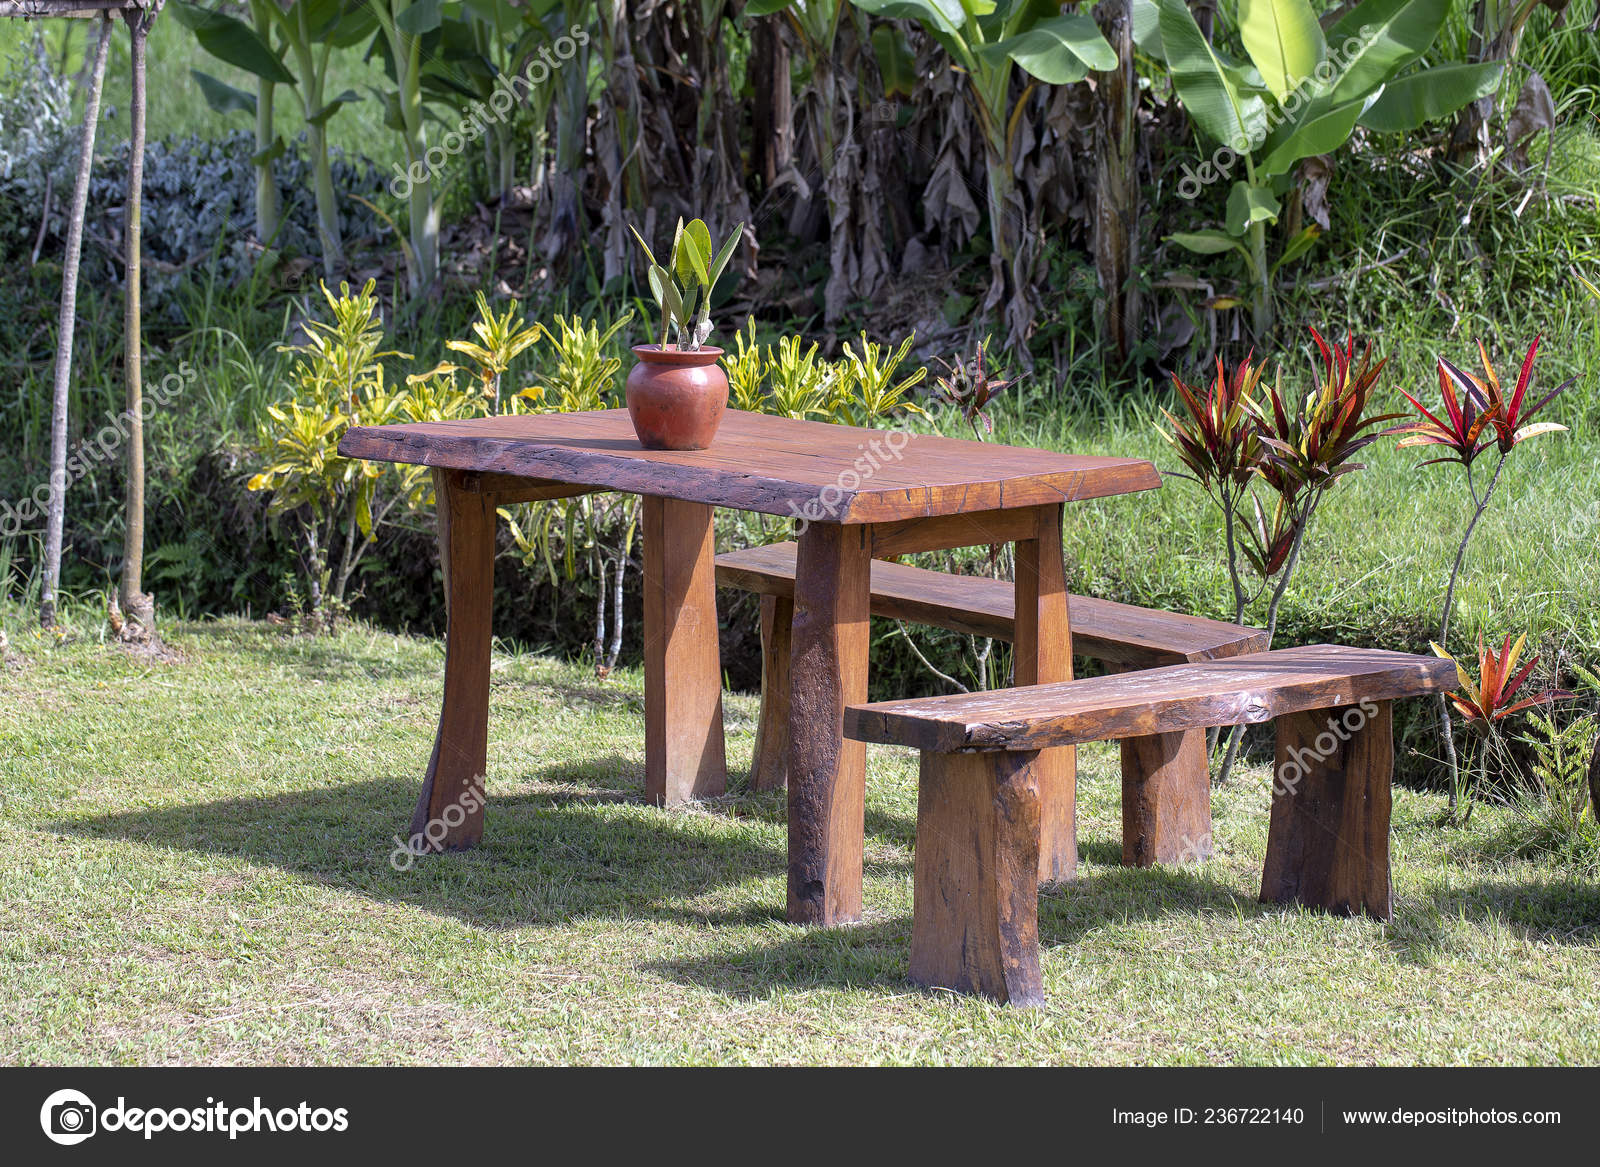 Wooden Table Chairs Empty Cafe Tropical, Wooden Table Chairs For Garden